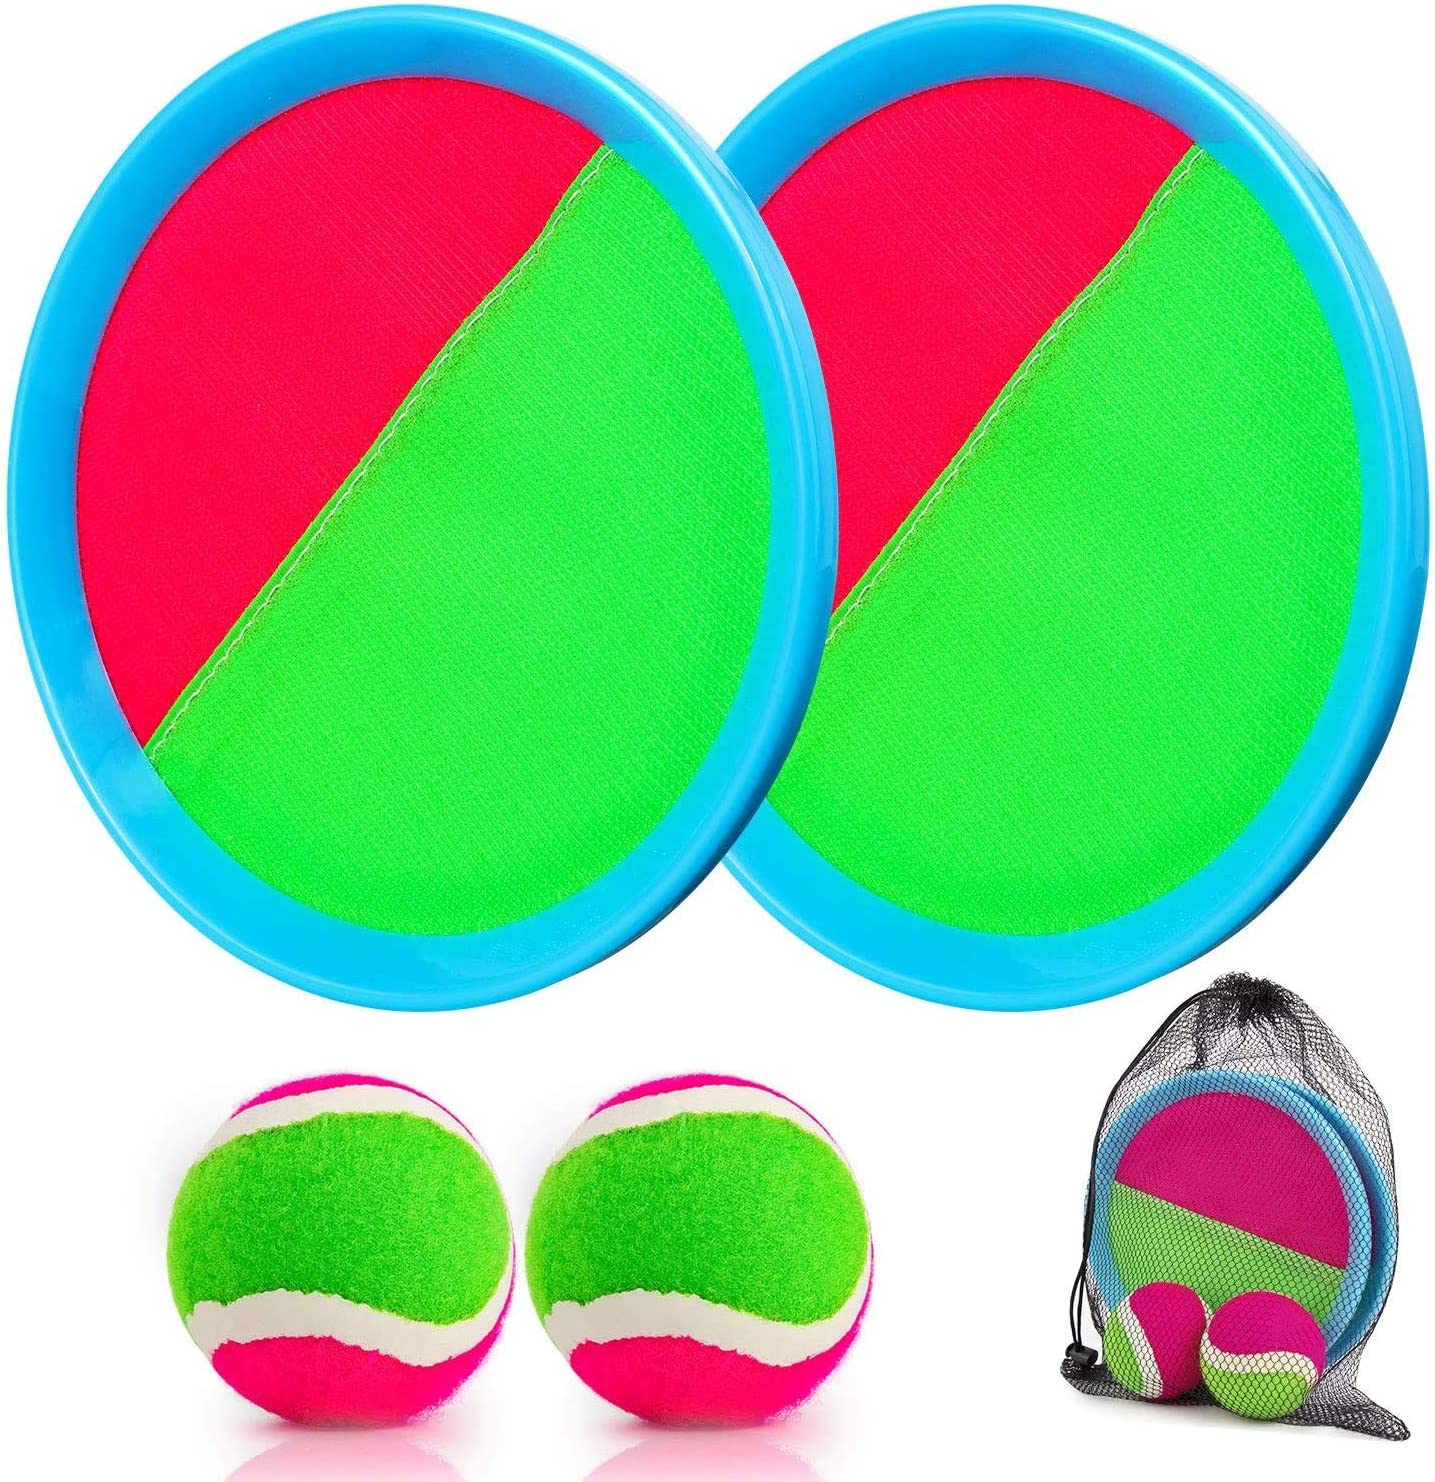 Develop Smarter Toss and In stock Attention brand Catch GameDevelop Paddle Smart Ball Set